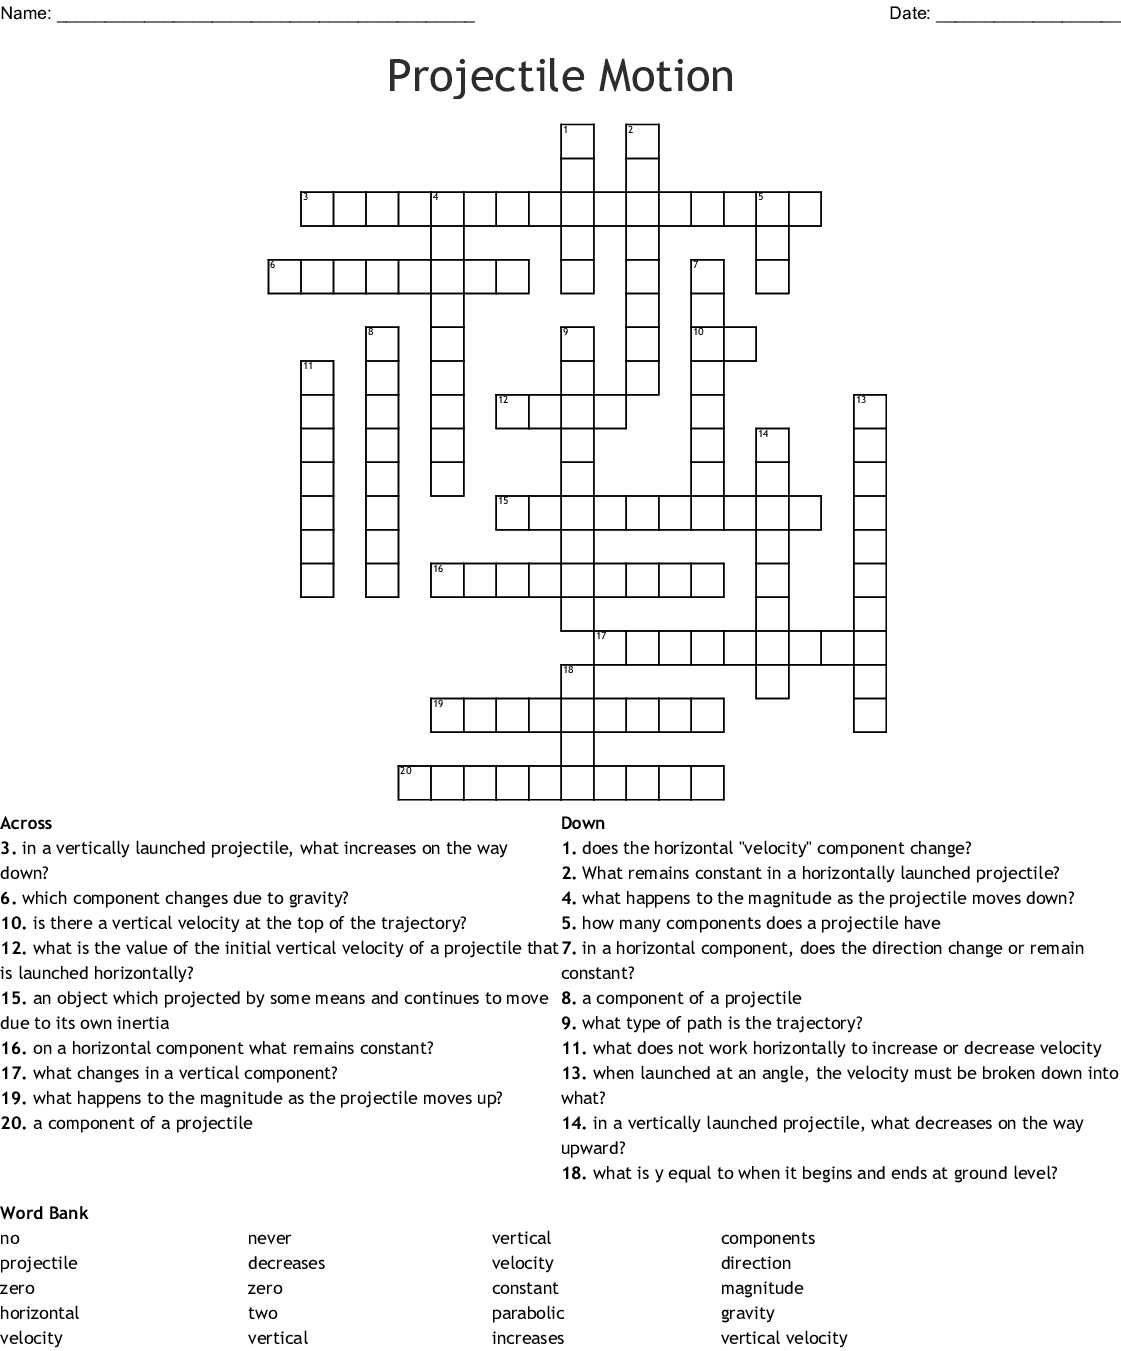 Projectile Motion Crossword Puzzle